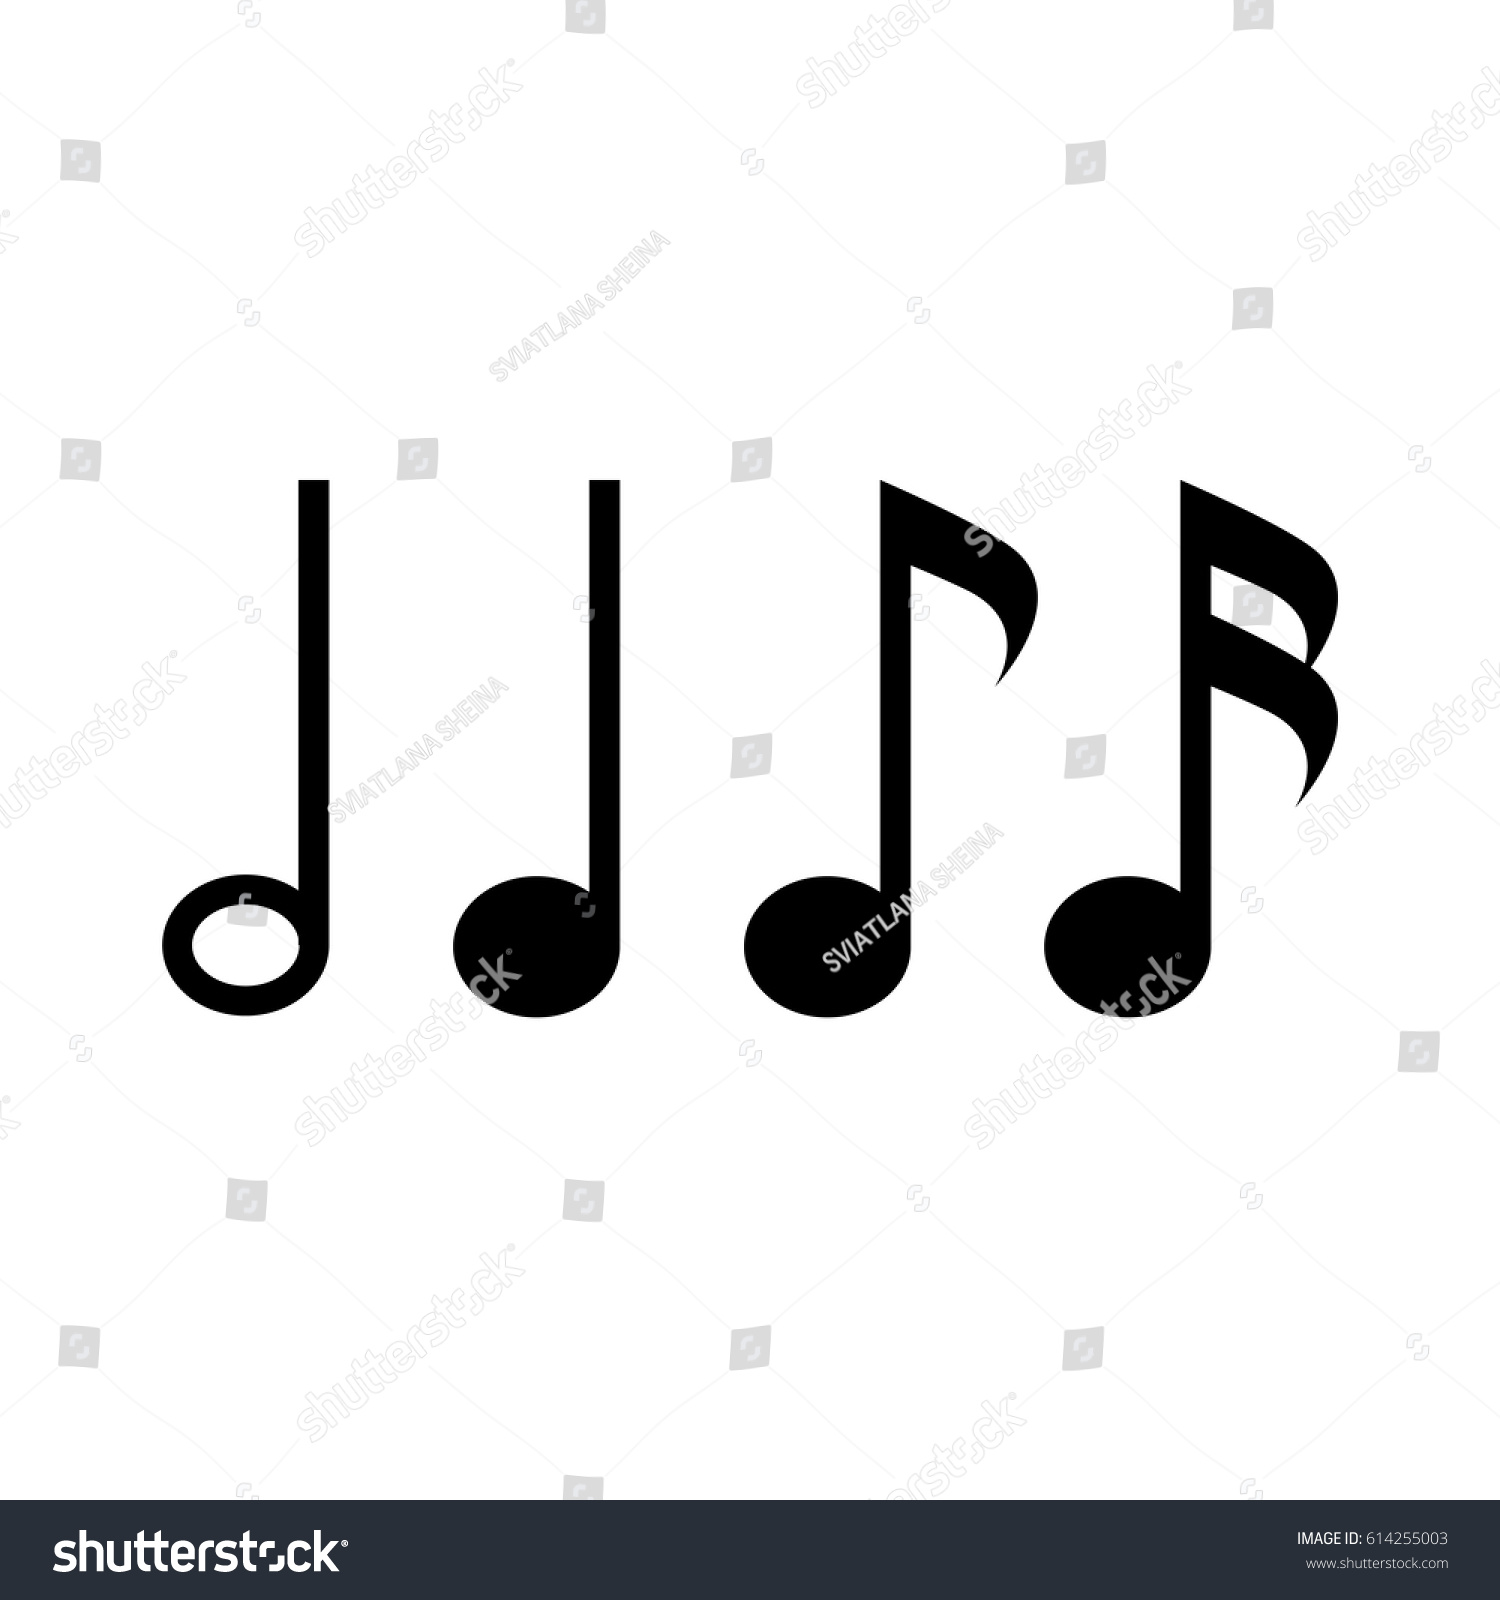 Symbol music notes sixteenth note eighth stock vector 614255003 symbol of music notes sixteenth note eighth note quarter note and half buycottarizona